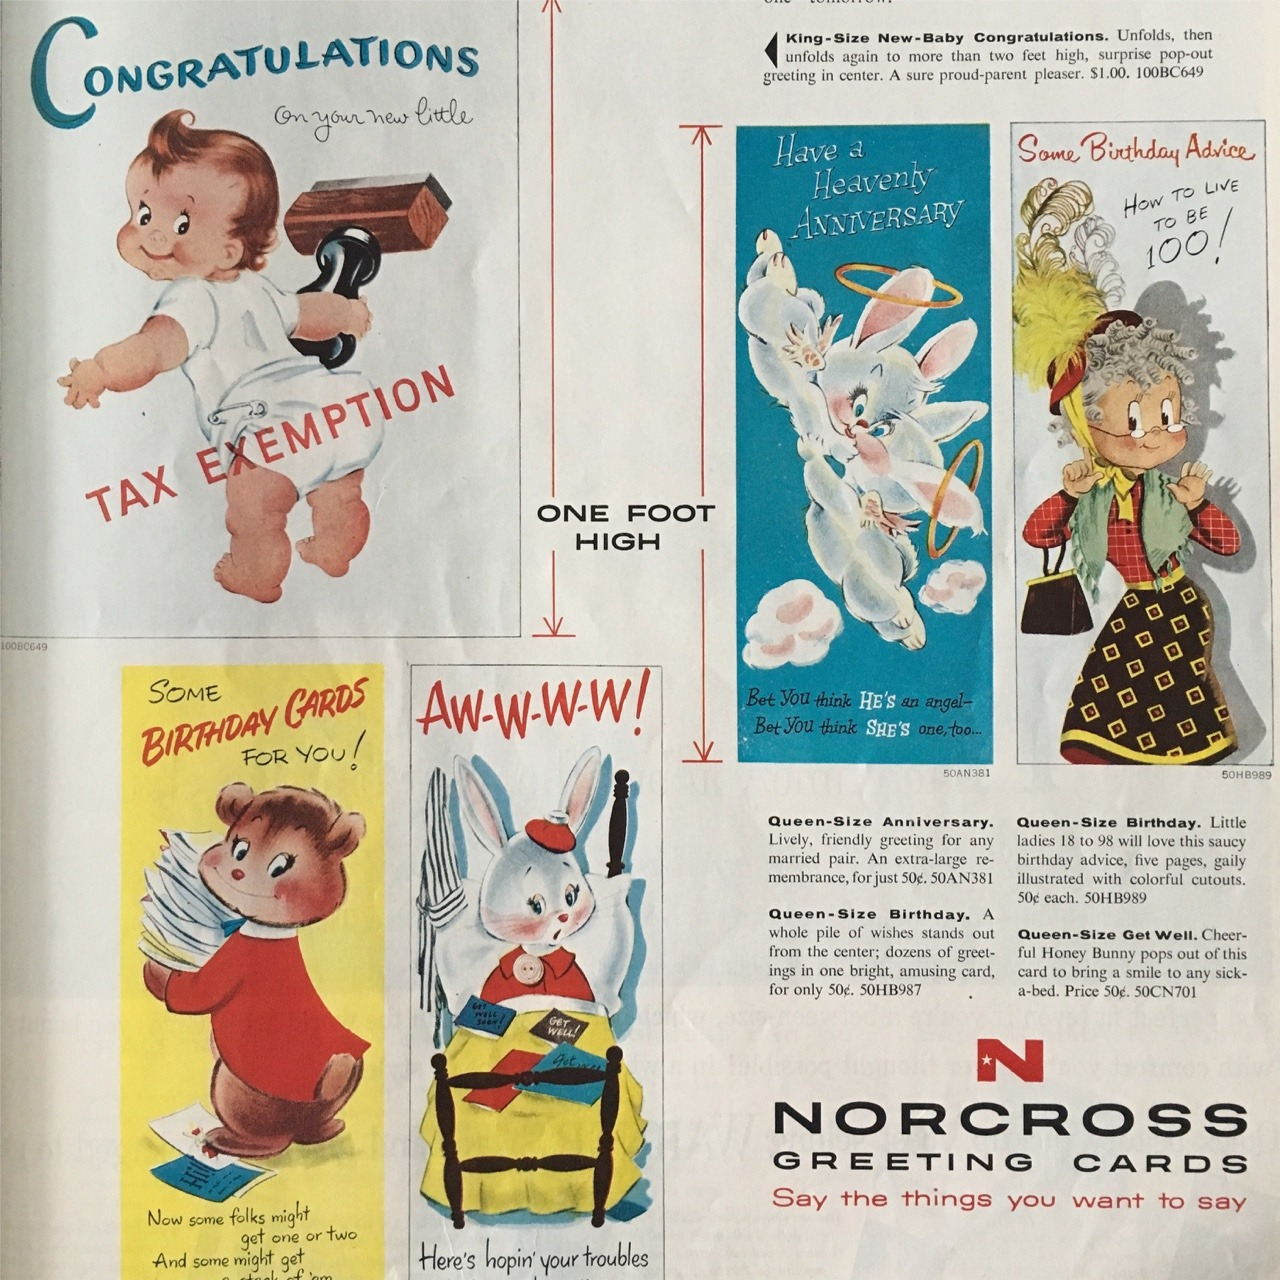 Ad detail for Norcross Greeting Cards. Ladies' Home Journal. May 1957.   The Norcross Greeting Card Company was founded in New York City in the mid 1920s by Arthur Norcross. The family-owned and operated company had a very distinct look in their greeting card designs, and it's been said that they were the first to produce Valentine's Day cards. The company was known to be very family-oriented, and treated their employees as such. When Arthur Norcross passed away in 1968, the company went through four more owners before declaring bankruptcy in 1981 and ceased operations.   At some point in their history, Norcross built an archive of antique greeting cards and other products such as ribbons, decorations, and labels which they added to their collection. This collection is now preserved by the Smithsonian's American History Museum in Washington, DC.